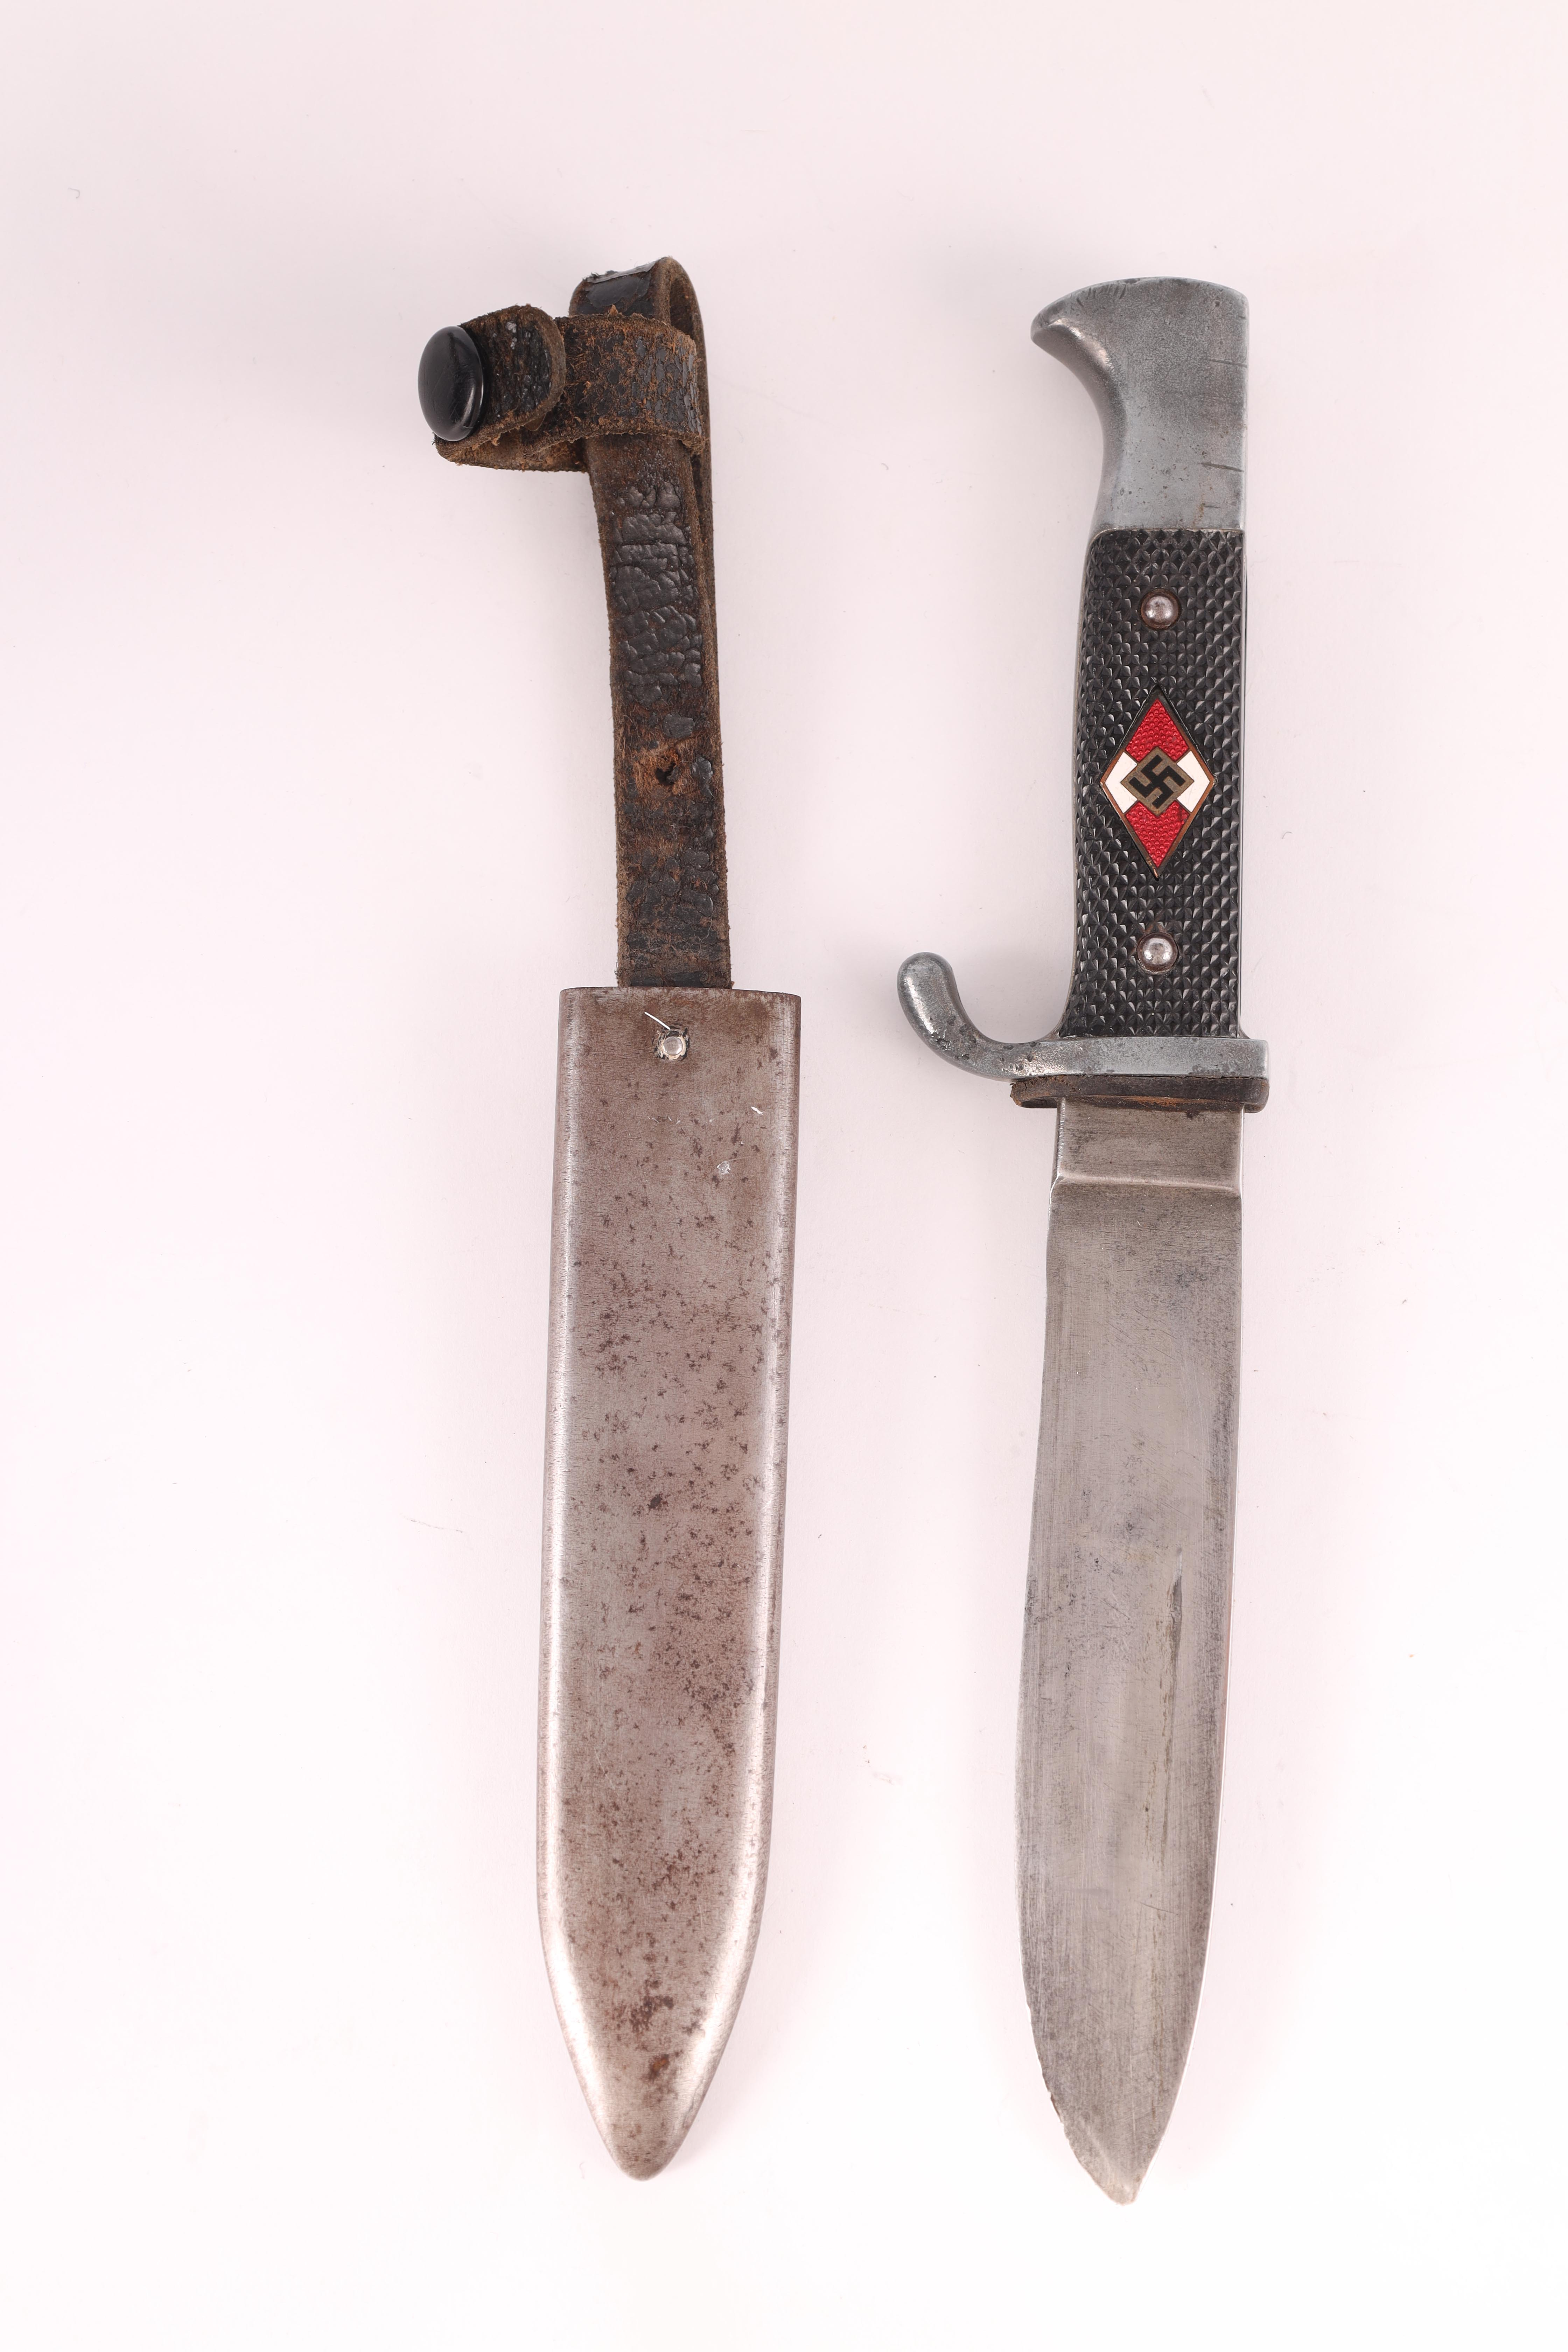 A WORLD WAR II GERMAN NAZI HITLER YOUTH DAGGER with checkered grip set with an enamel swastika - Image 4 of 7